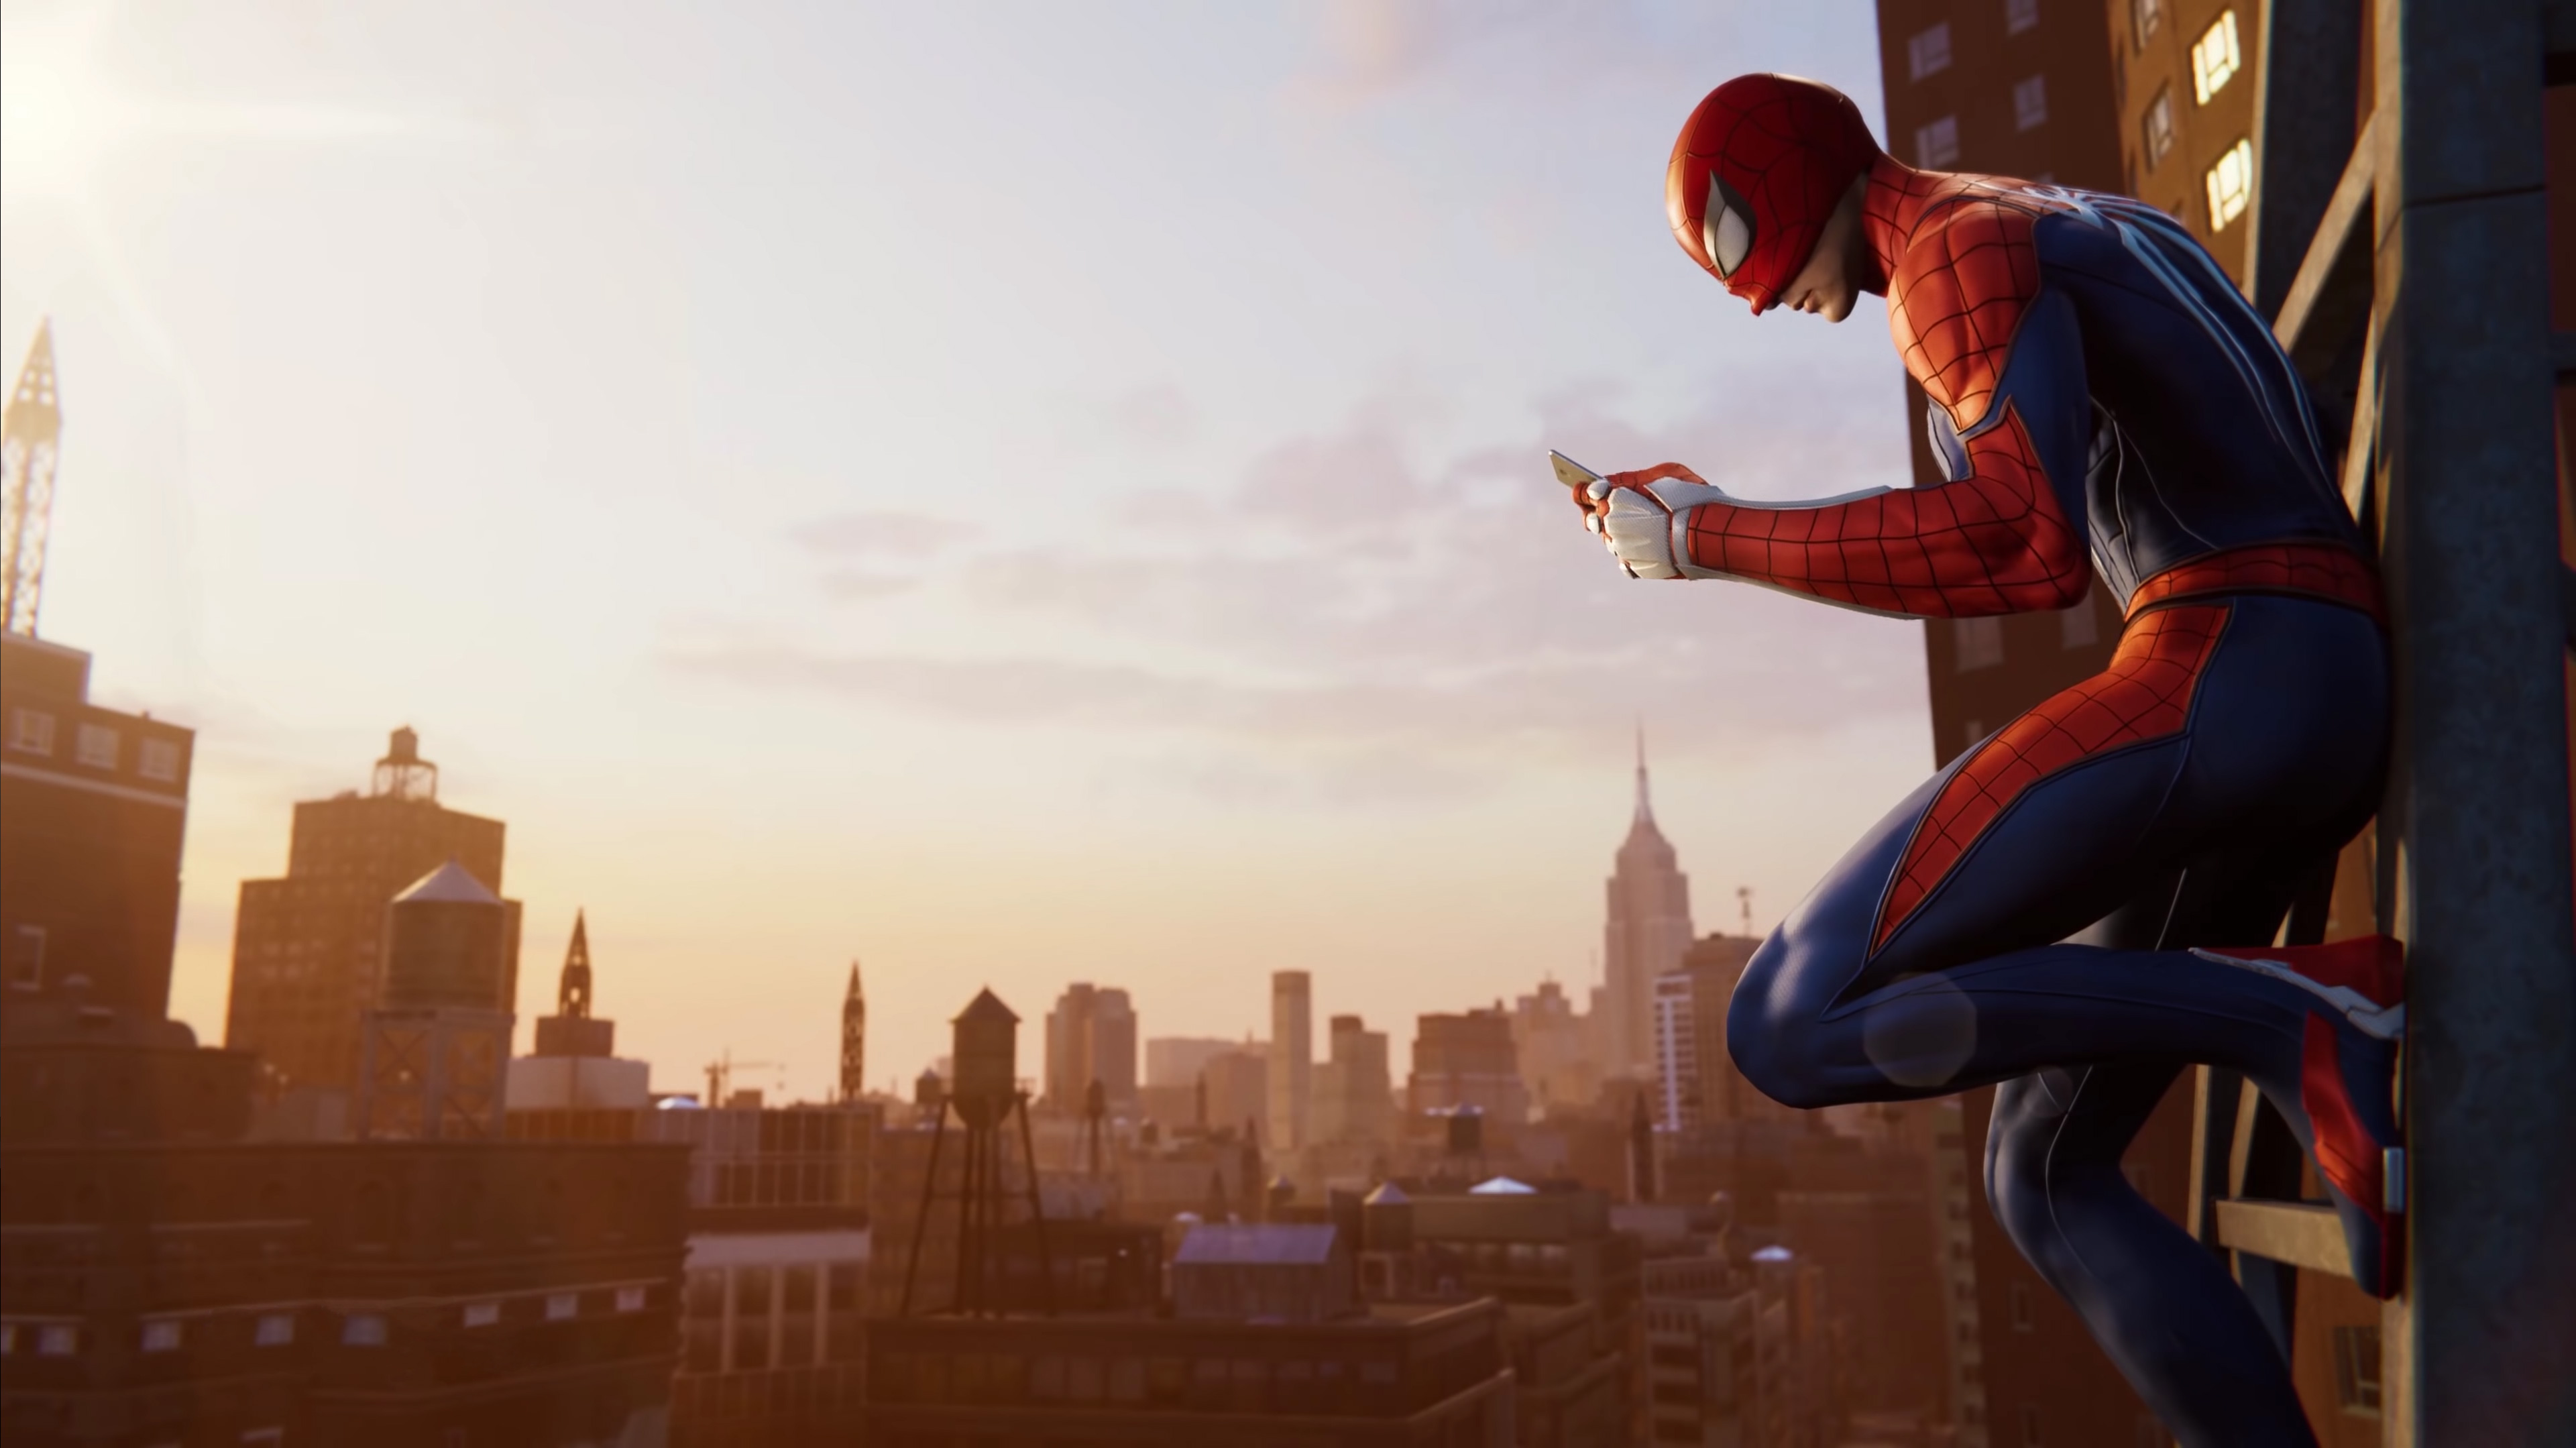 Spiderman Ps4 Pro 5k Hd Games 4k Wallpapers Images Backgrounds